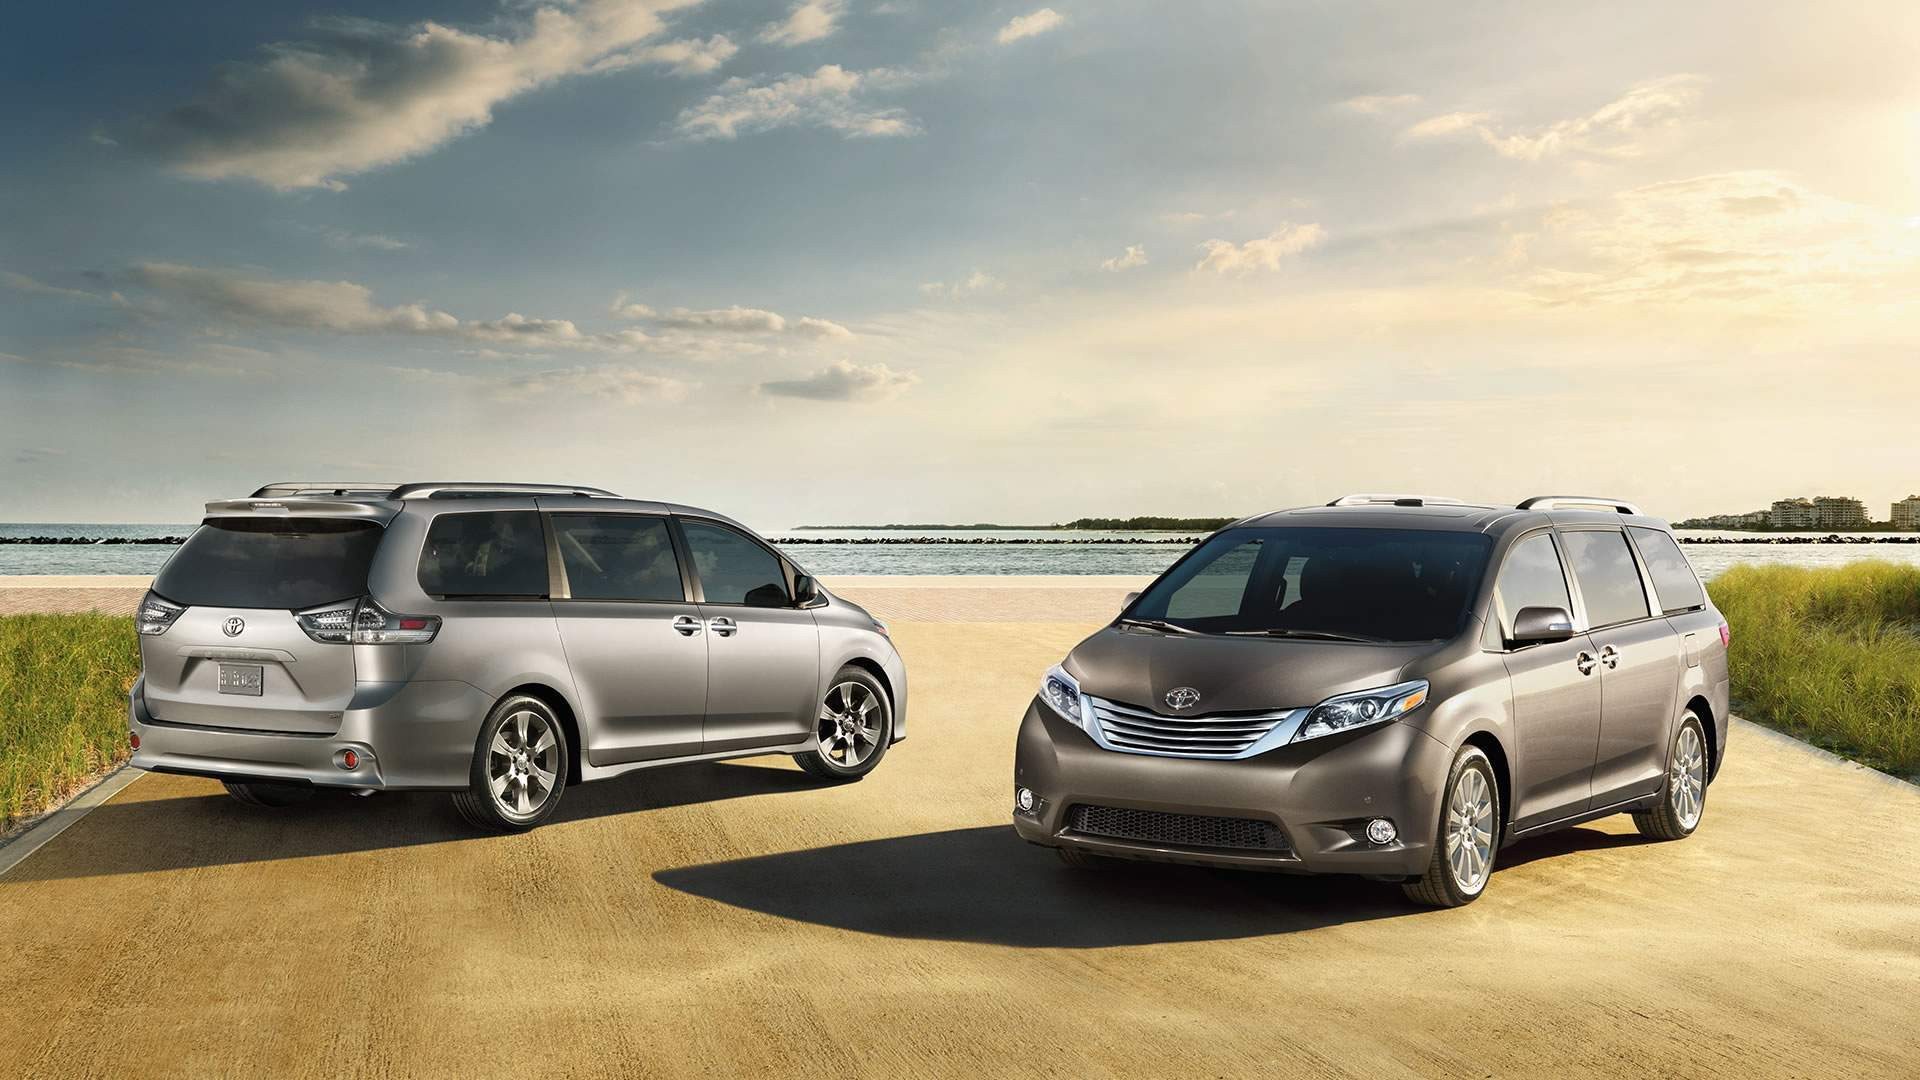 Toyota Sienna Service Manual: Wiper and washer system